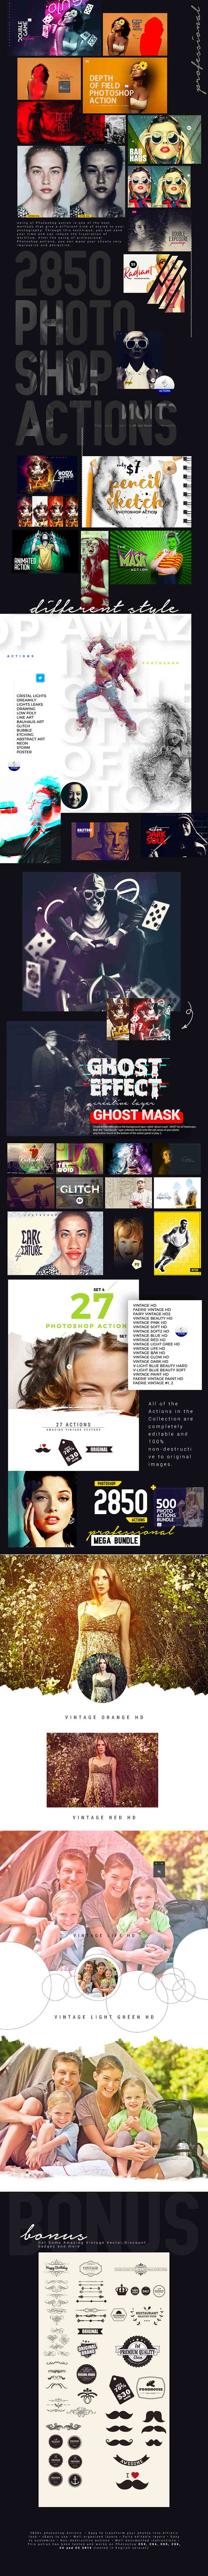 Mega Bundle Of 2850+ Professional Photoshop Actions - 2